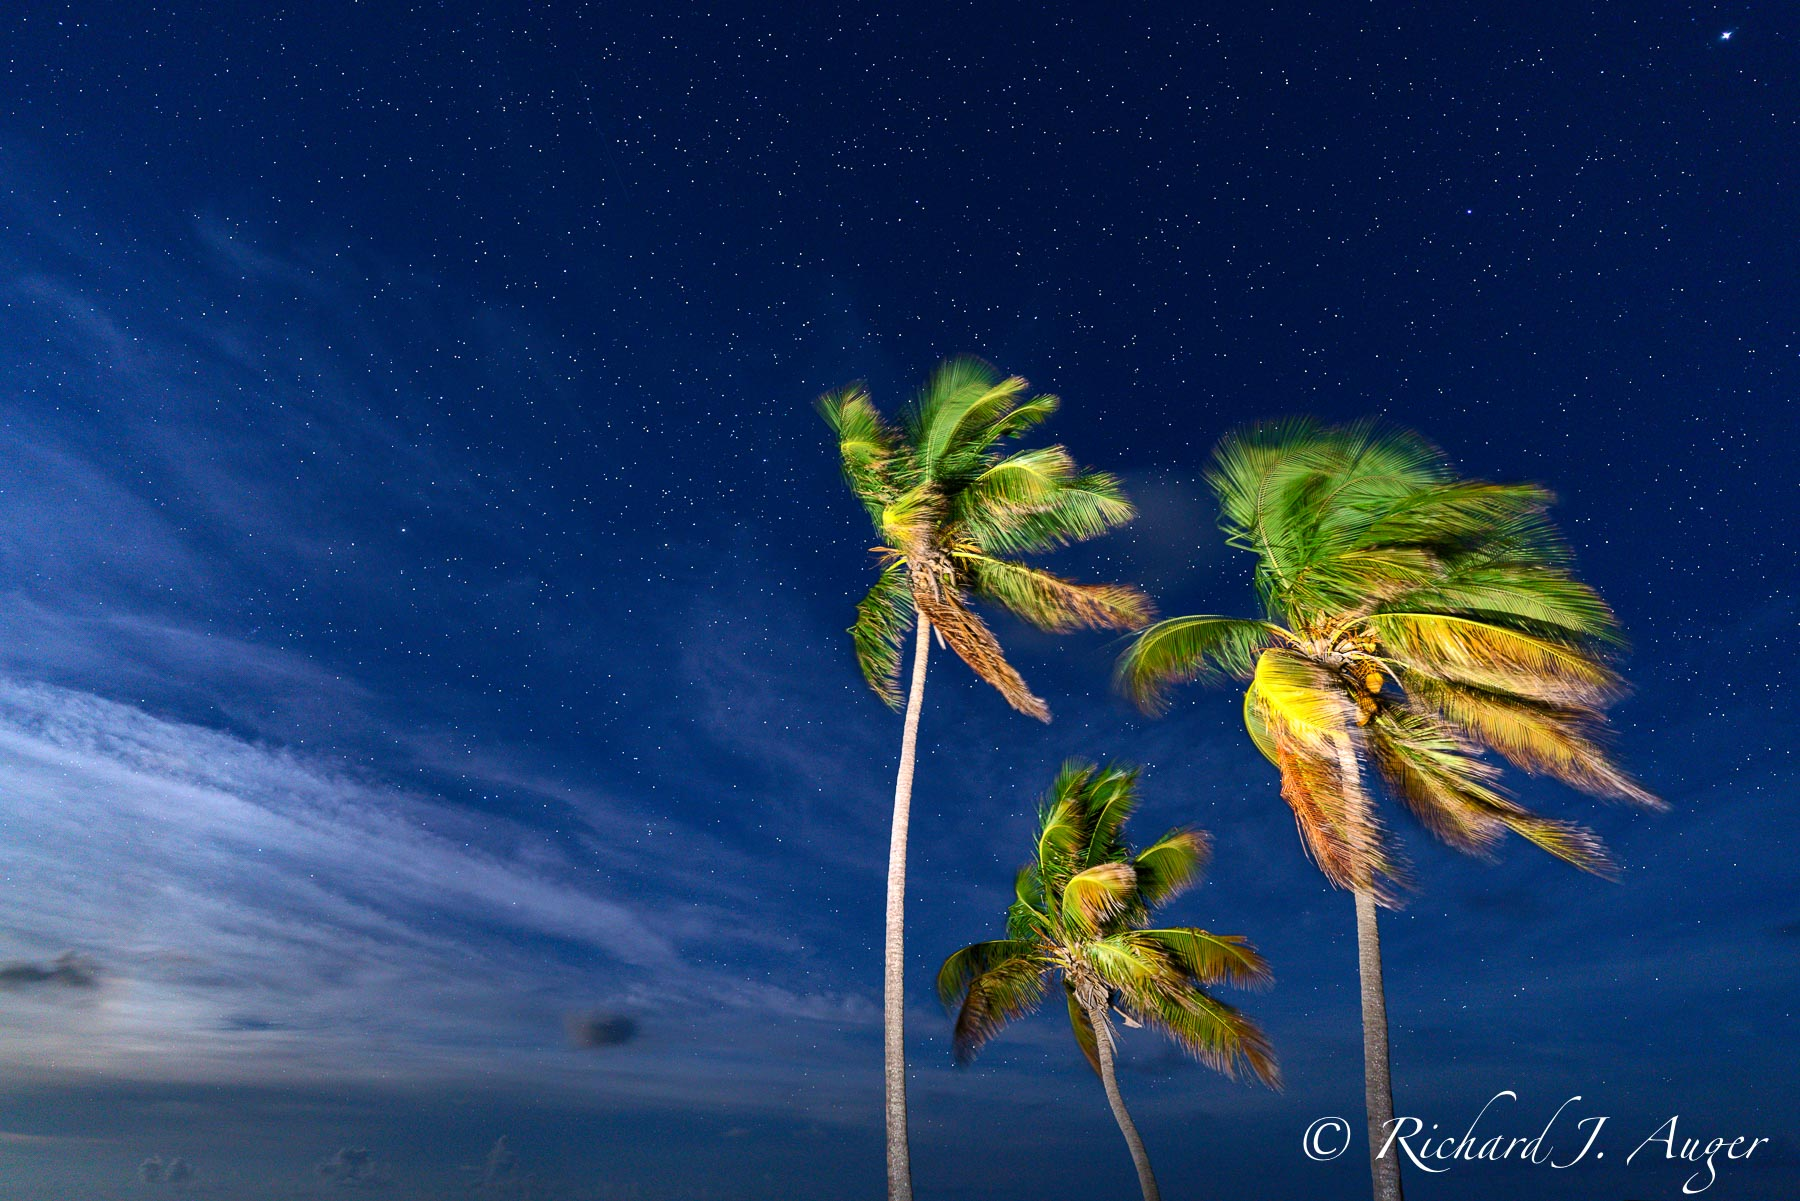 Florida Keys, Palm Trees, Bahia Honda, Key West, Midnight, Stars, Lighting, Blue